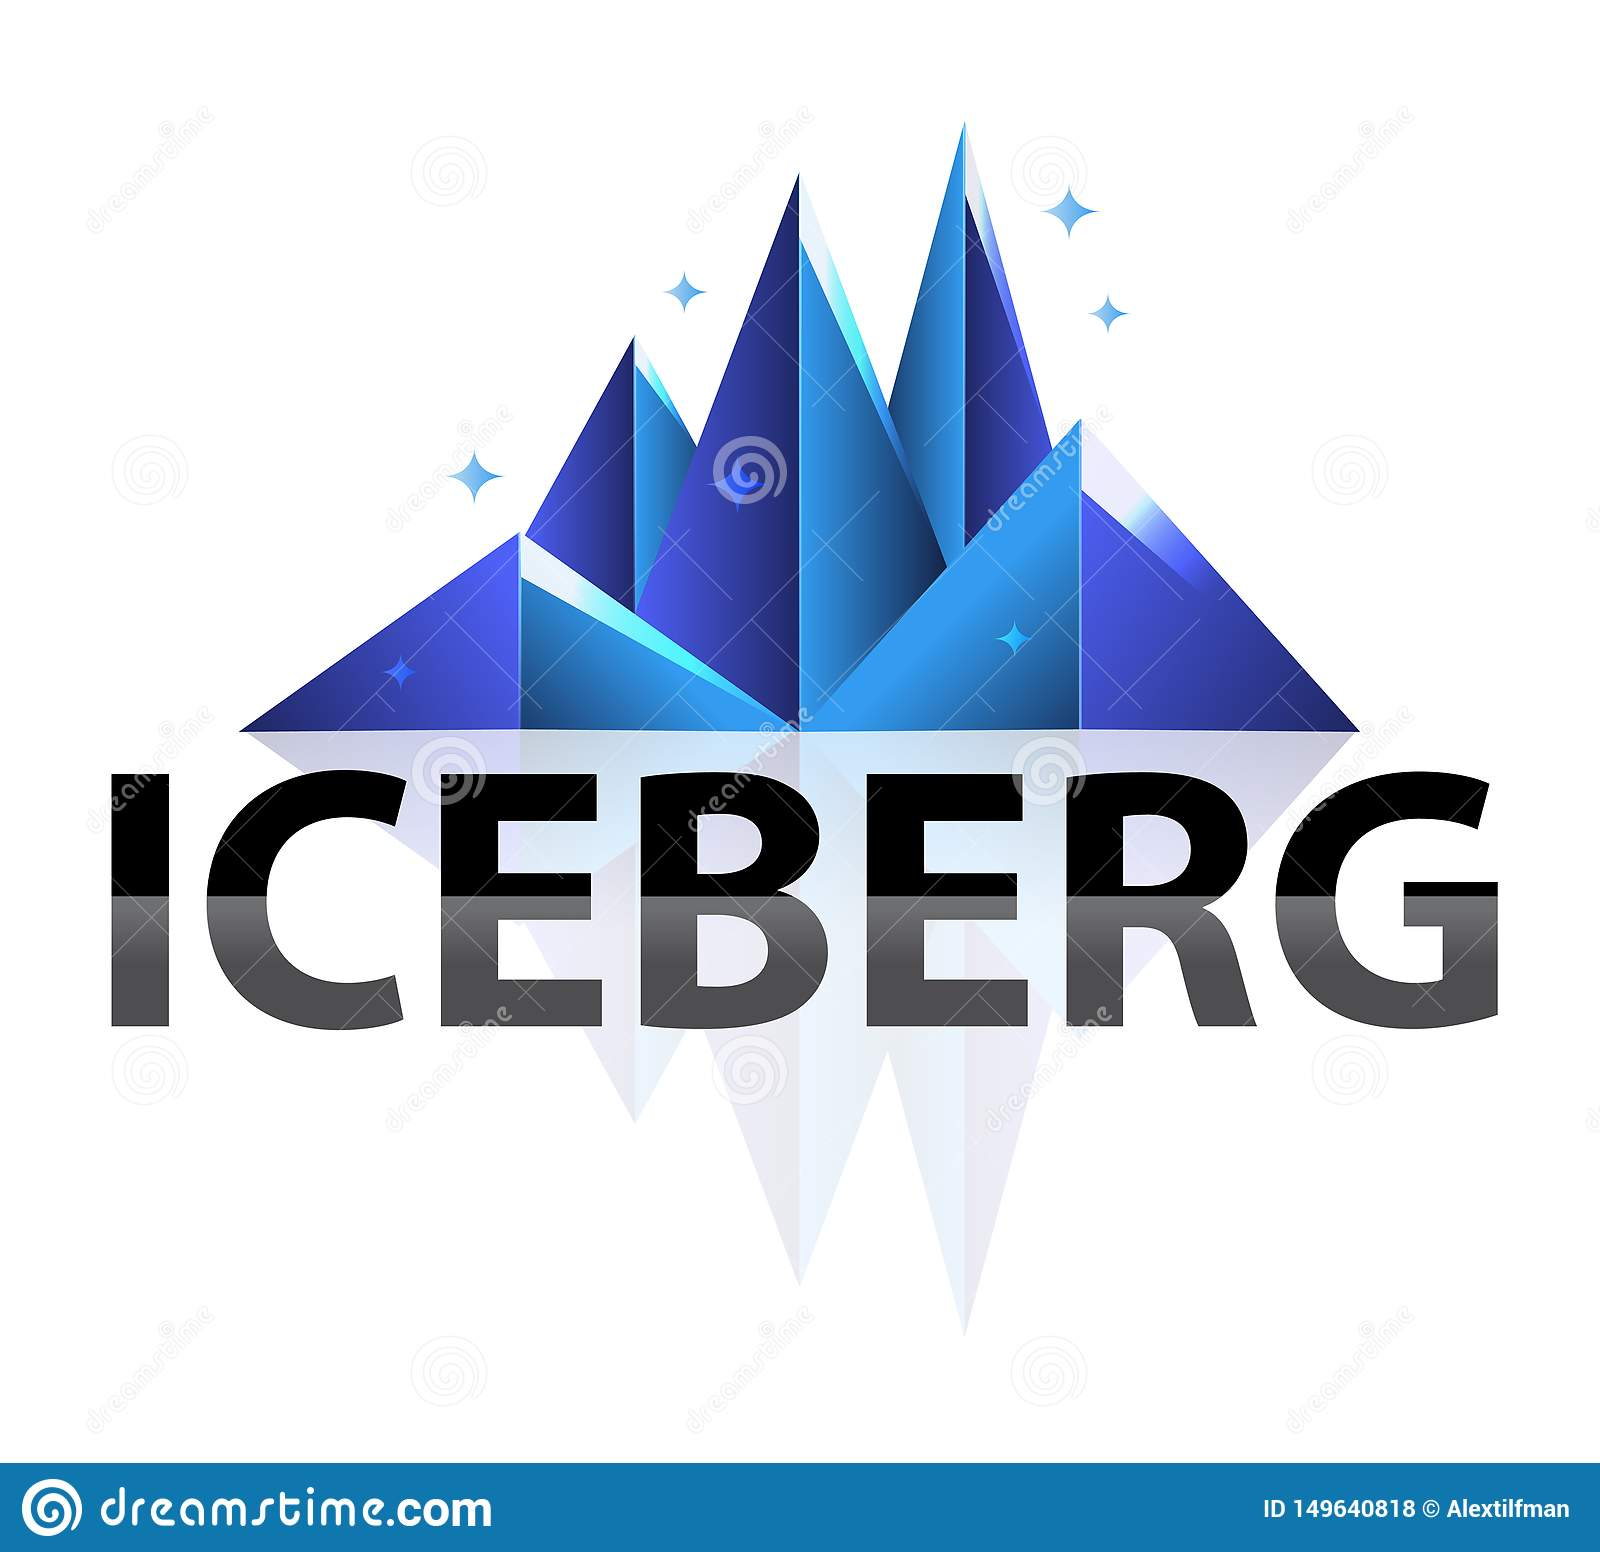 Creative Modern Abstract Geometric Low Poly shining Iceberg Logo. Flat style Illustration In Isolated White Background